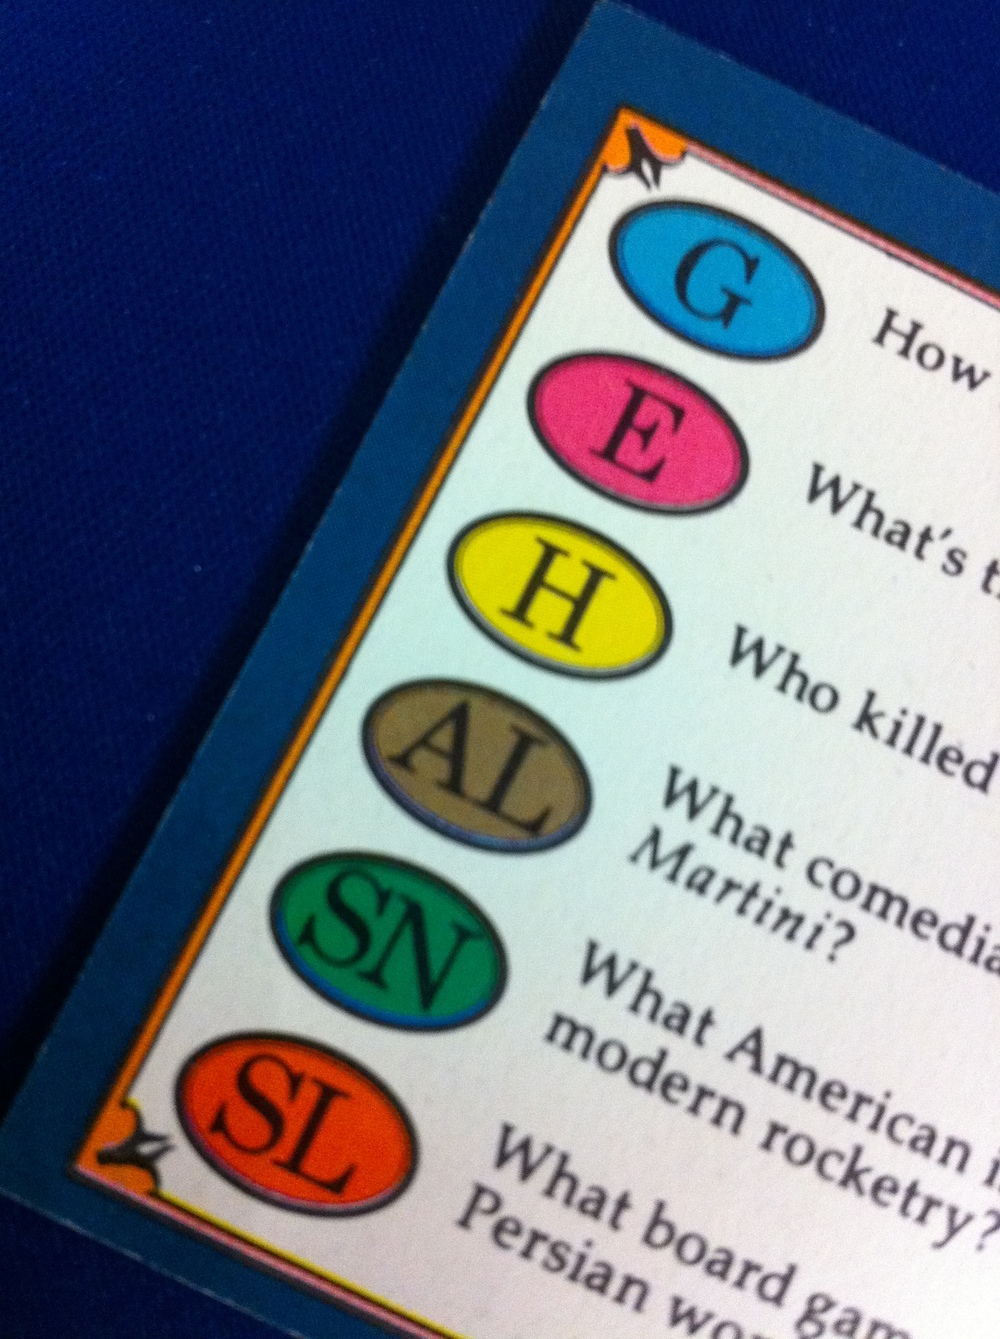 21. Trivial Pursuit - invented by Chris Haney and Scott Abbott in 1979.